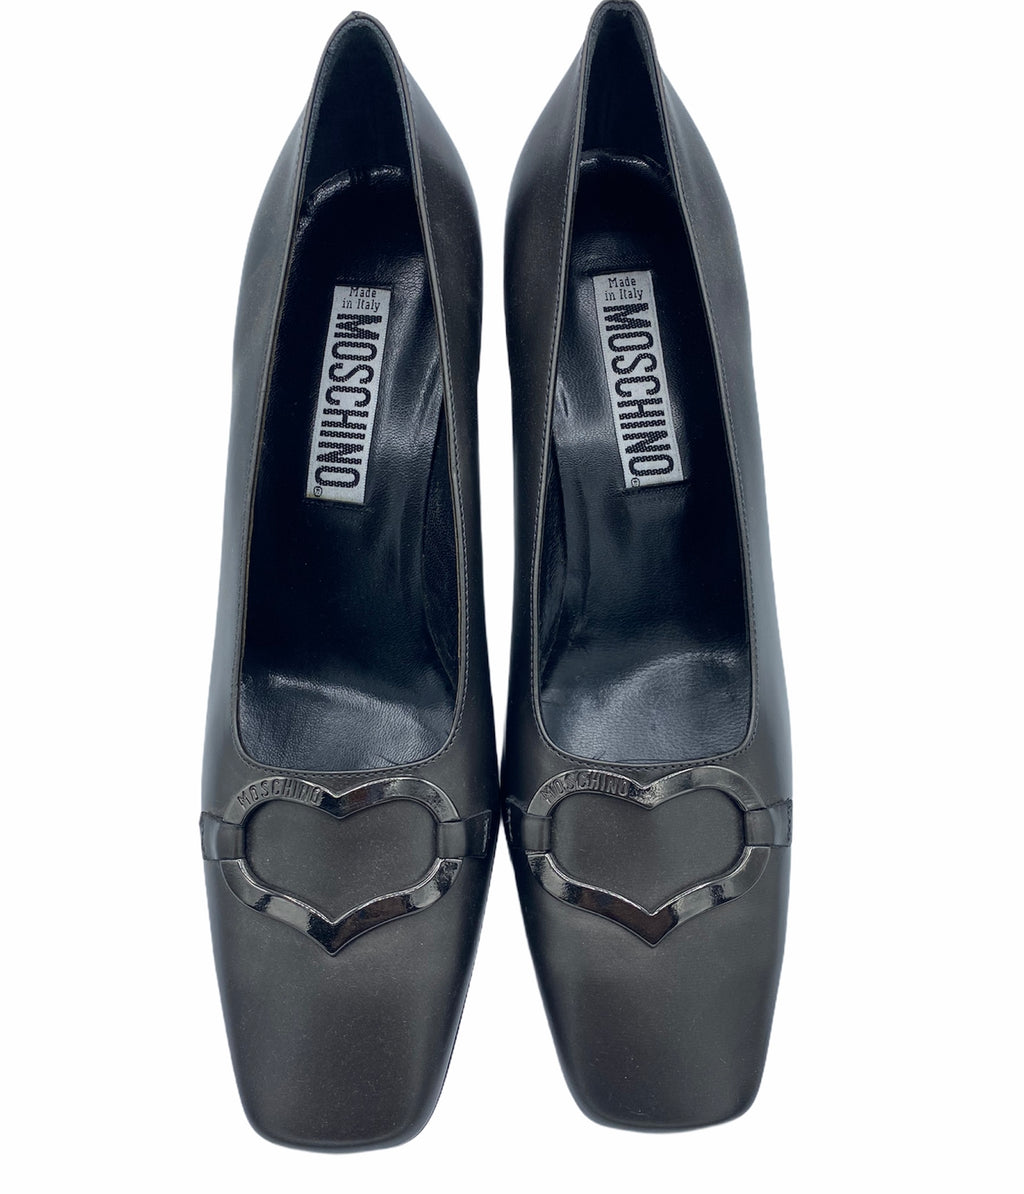 Moschino 90s Grey Pilgrim Pumps With Chrome Heart FRONT 1 of 4